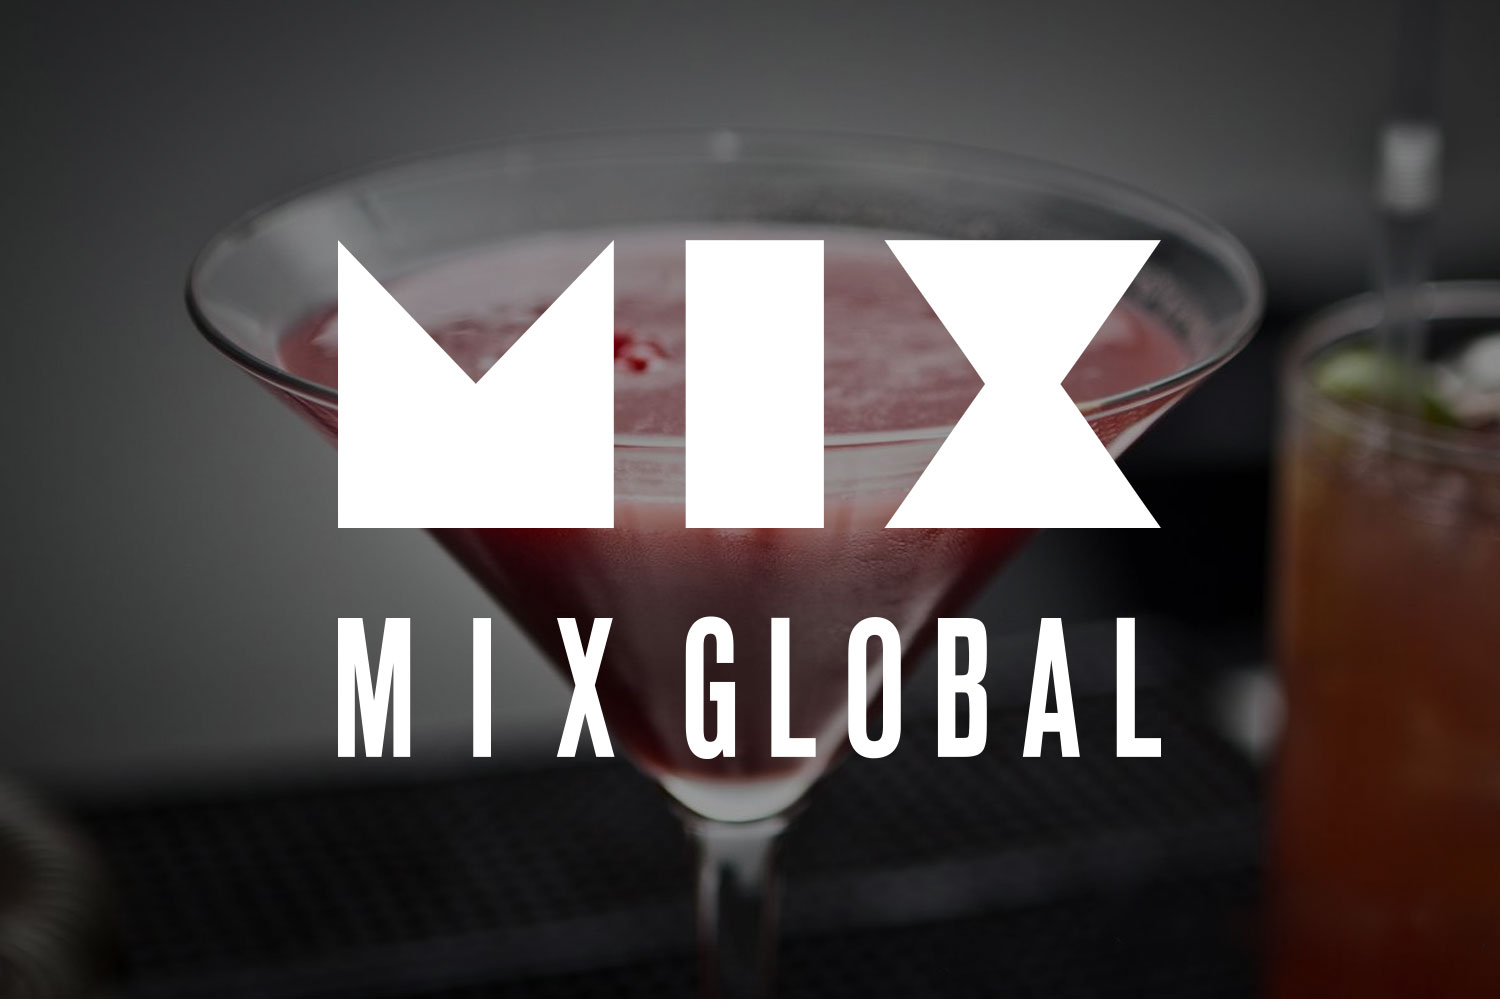 MIXGLOBAL EVENTS     Adding more flair & mixology to the luxury events company